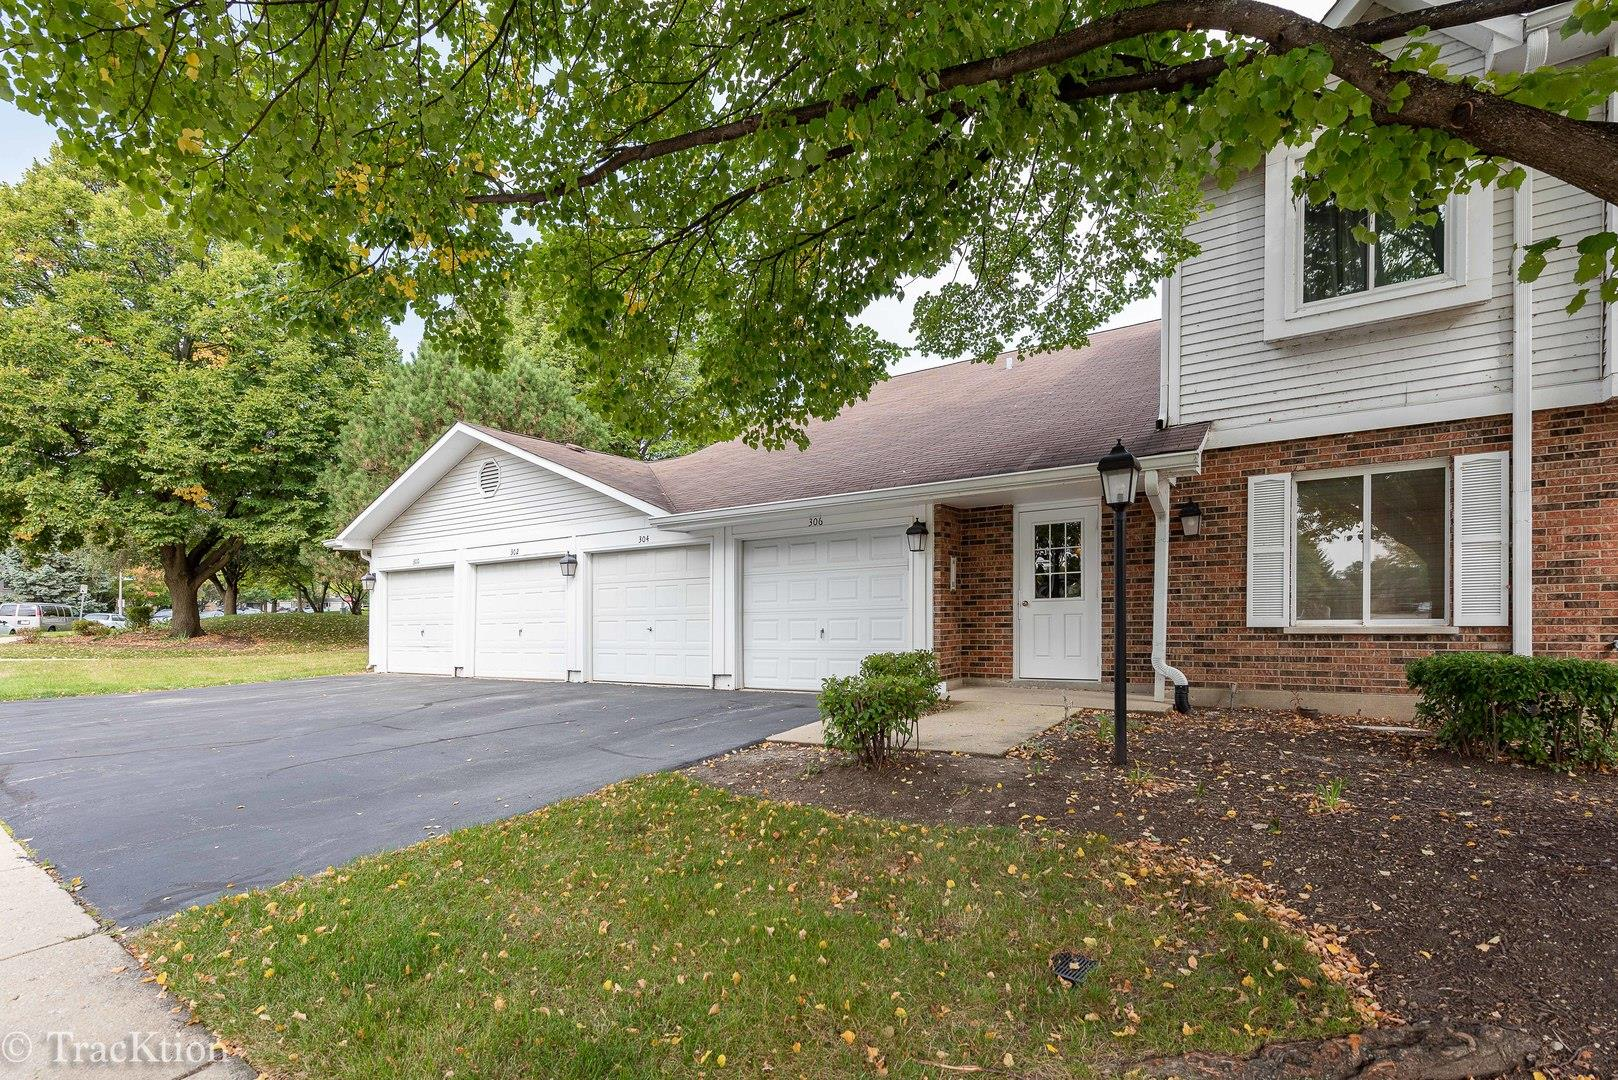 300 SANDPEBBLE Lane #300, Aurora, IL 60504 - #: 10880526